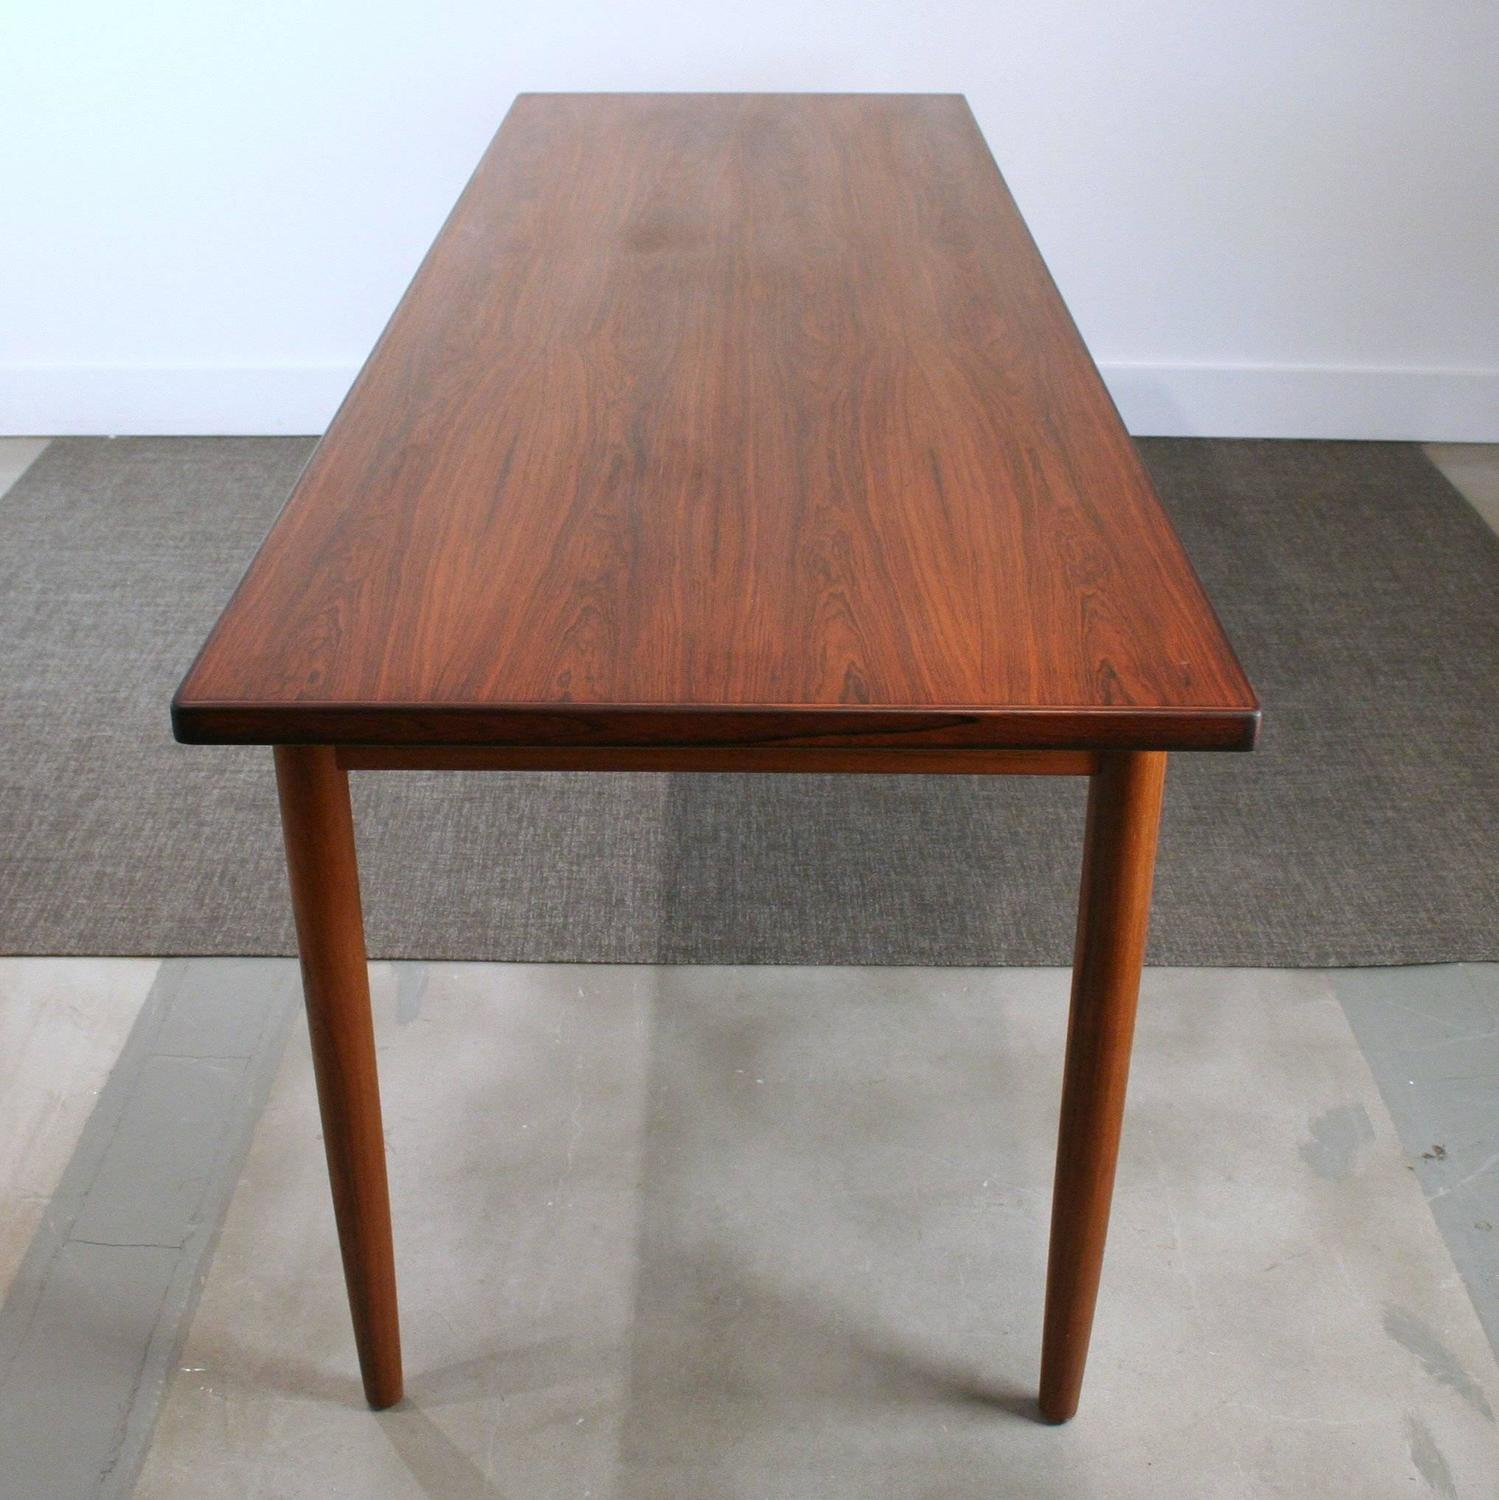 Long Dining Tables For Sale: Vintage Danish Rosewood Narrow Dining Table For Sale At